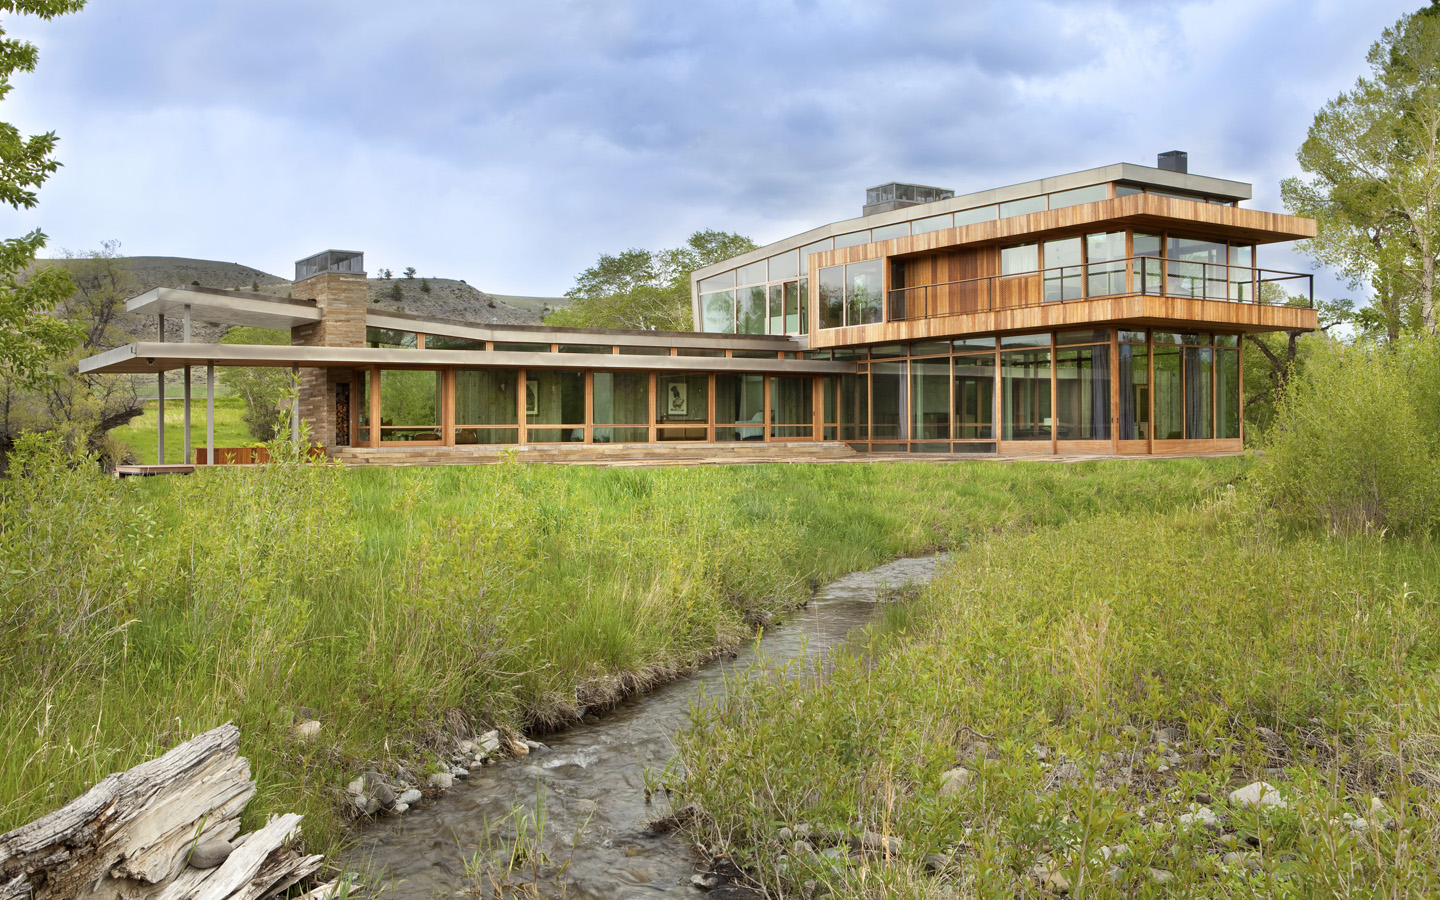 Big timber riverside house by hughes umbanhowar architects - Residence luxe hughes umbanhowar architects ...